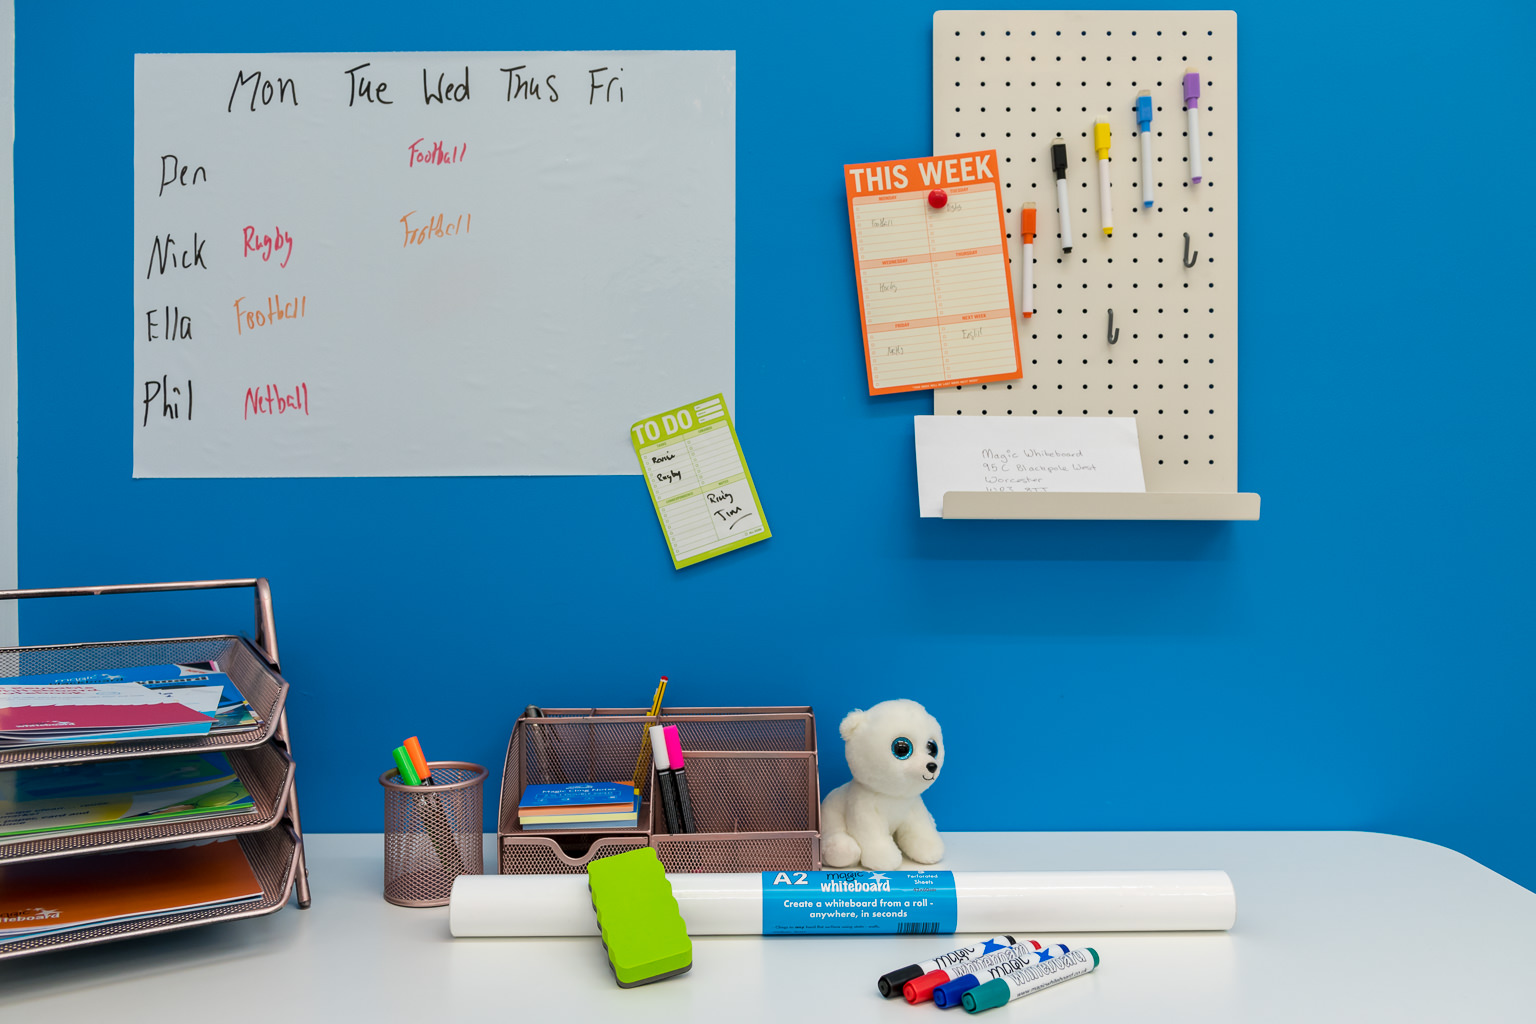 New White Office Pegboards and A2 Magic Whiteboard